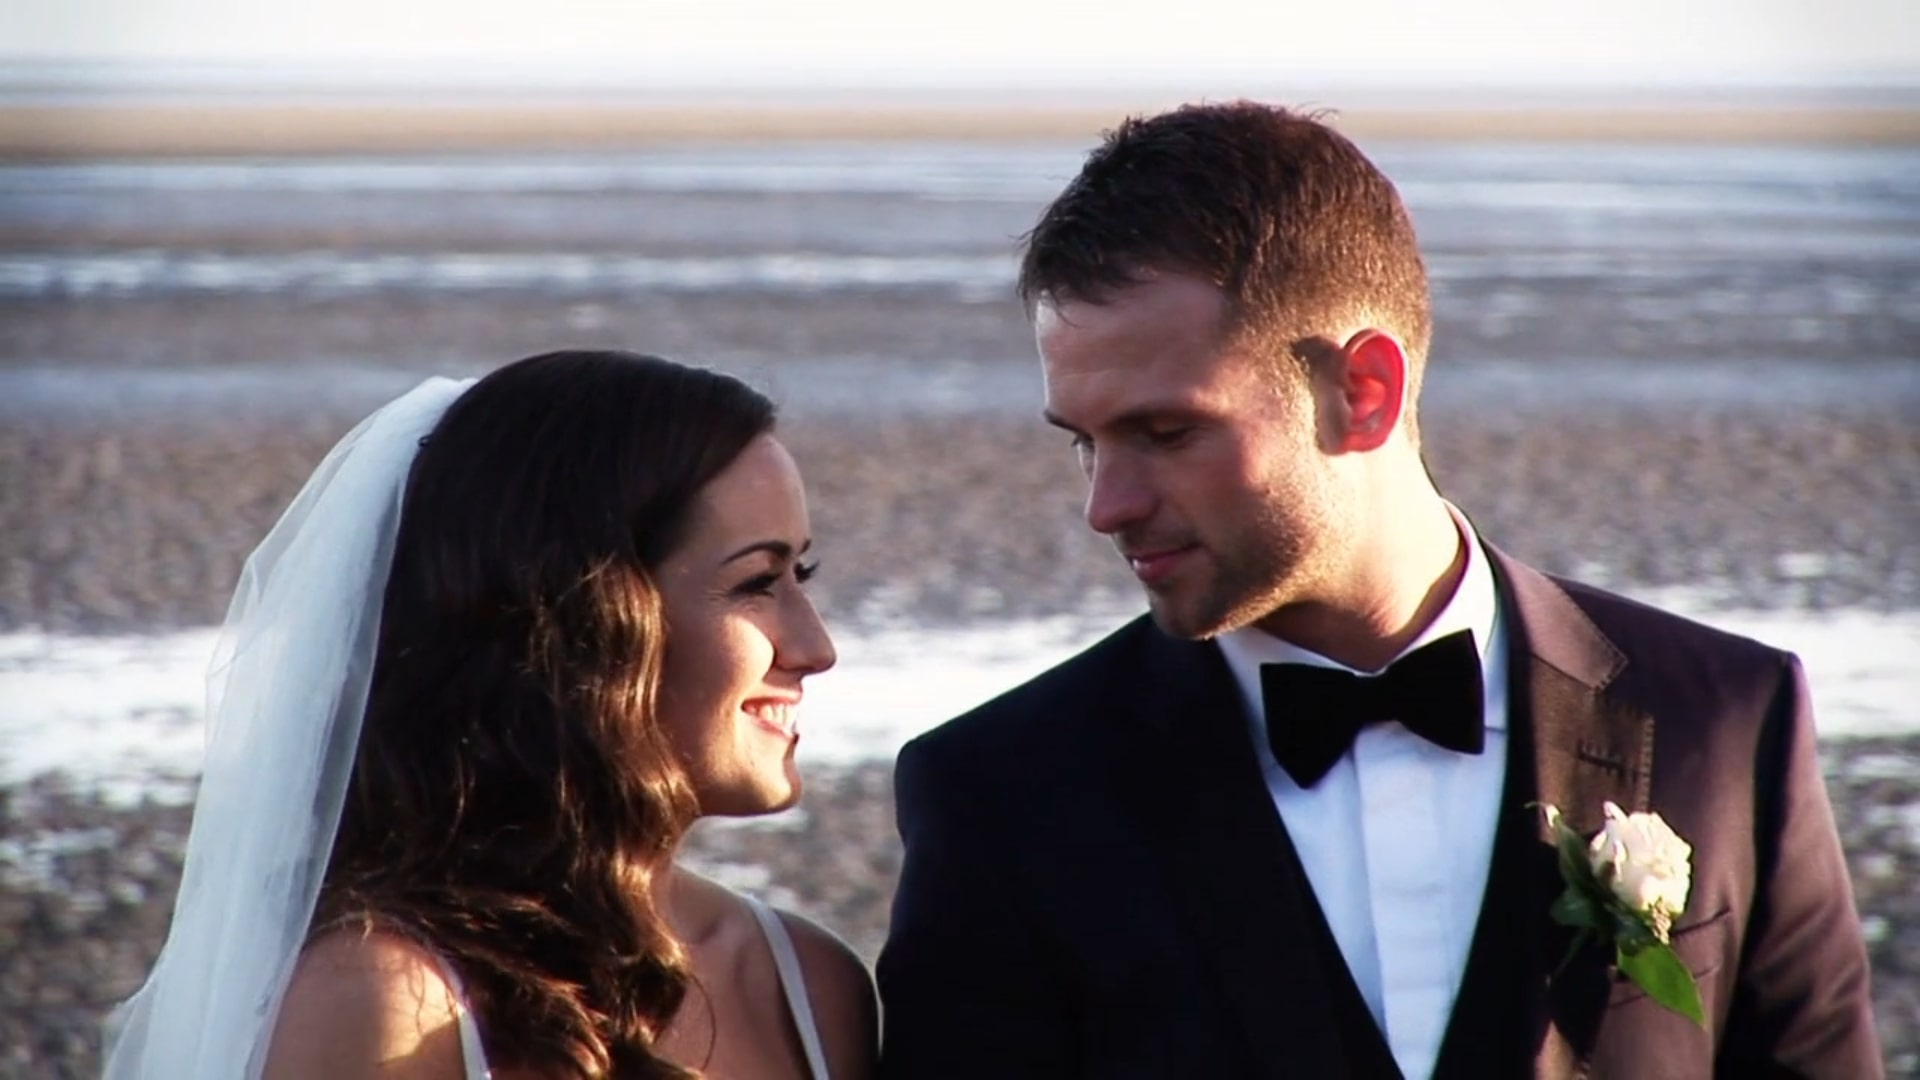 Aisling & Emmet's Wedding Video Highlights